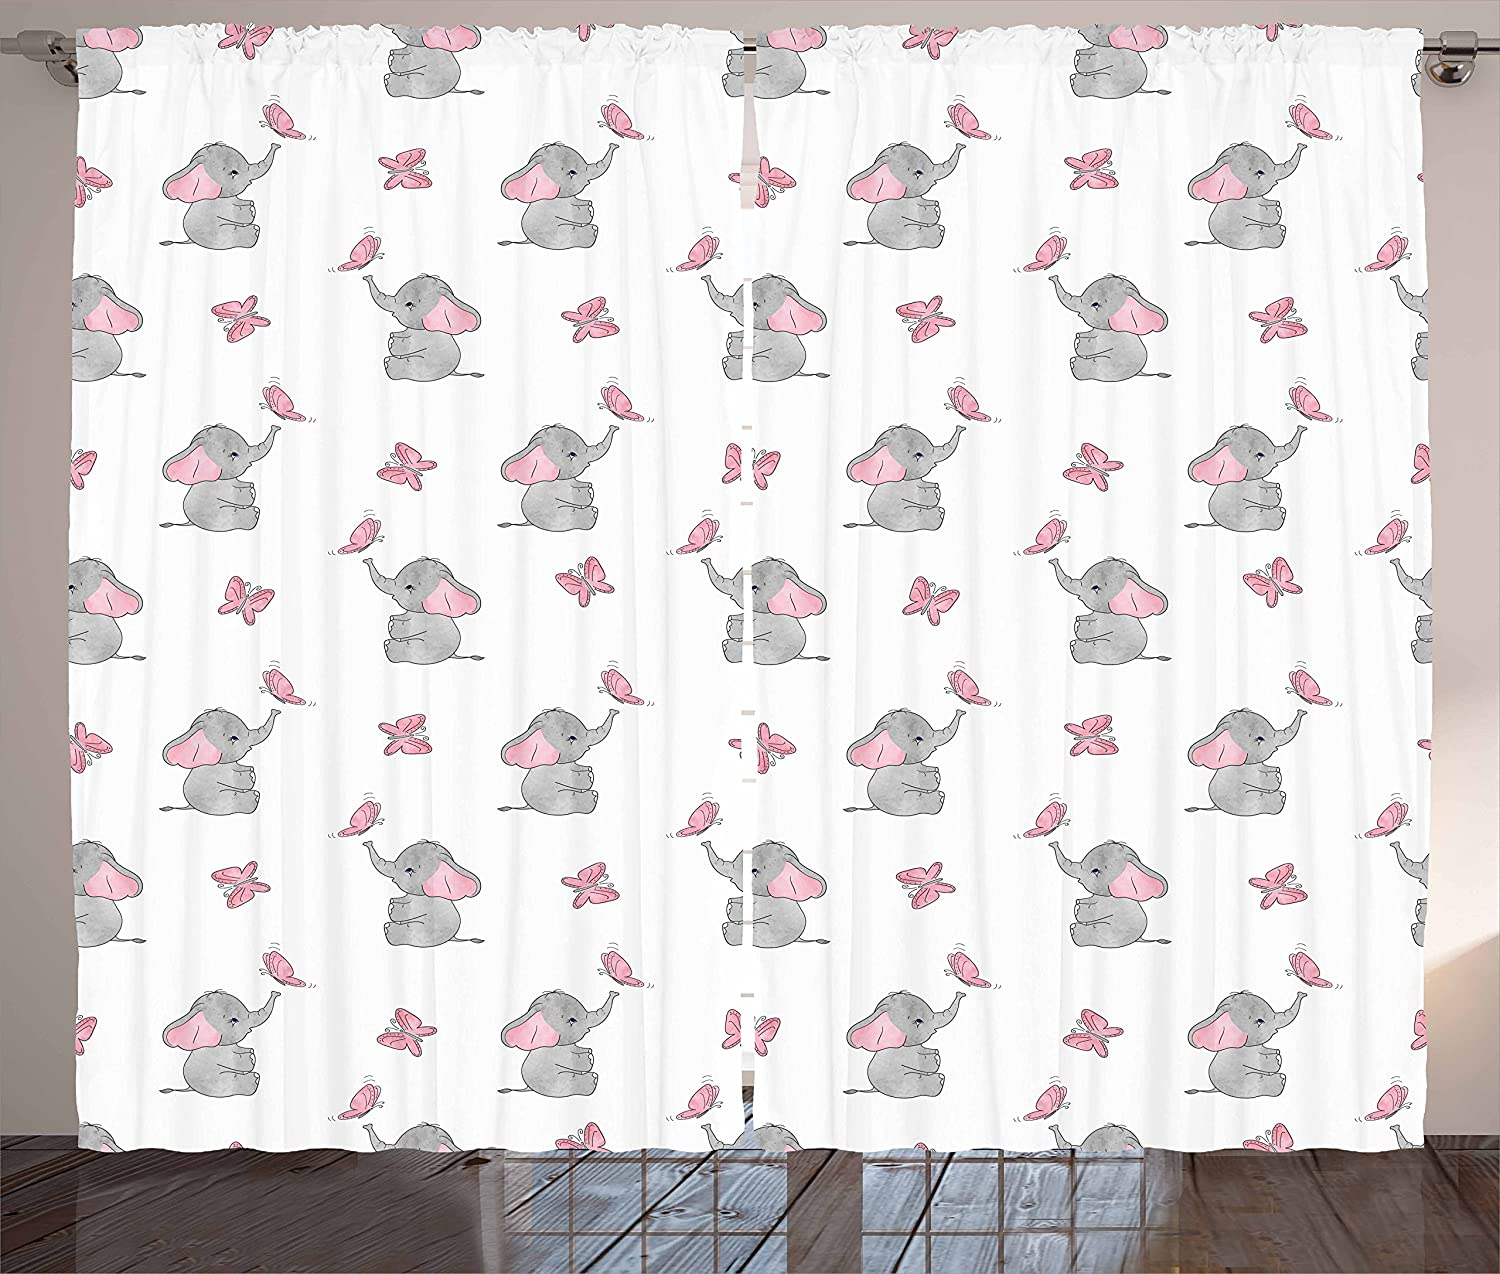 Ambesonne Elephant Cartoon Curtains, Baby Elephants Playing Butterflies Design Pattern, Living Room Bedroom Window Drapes 2 Panel Set, 108